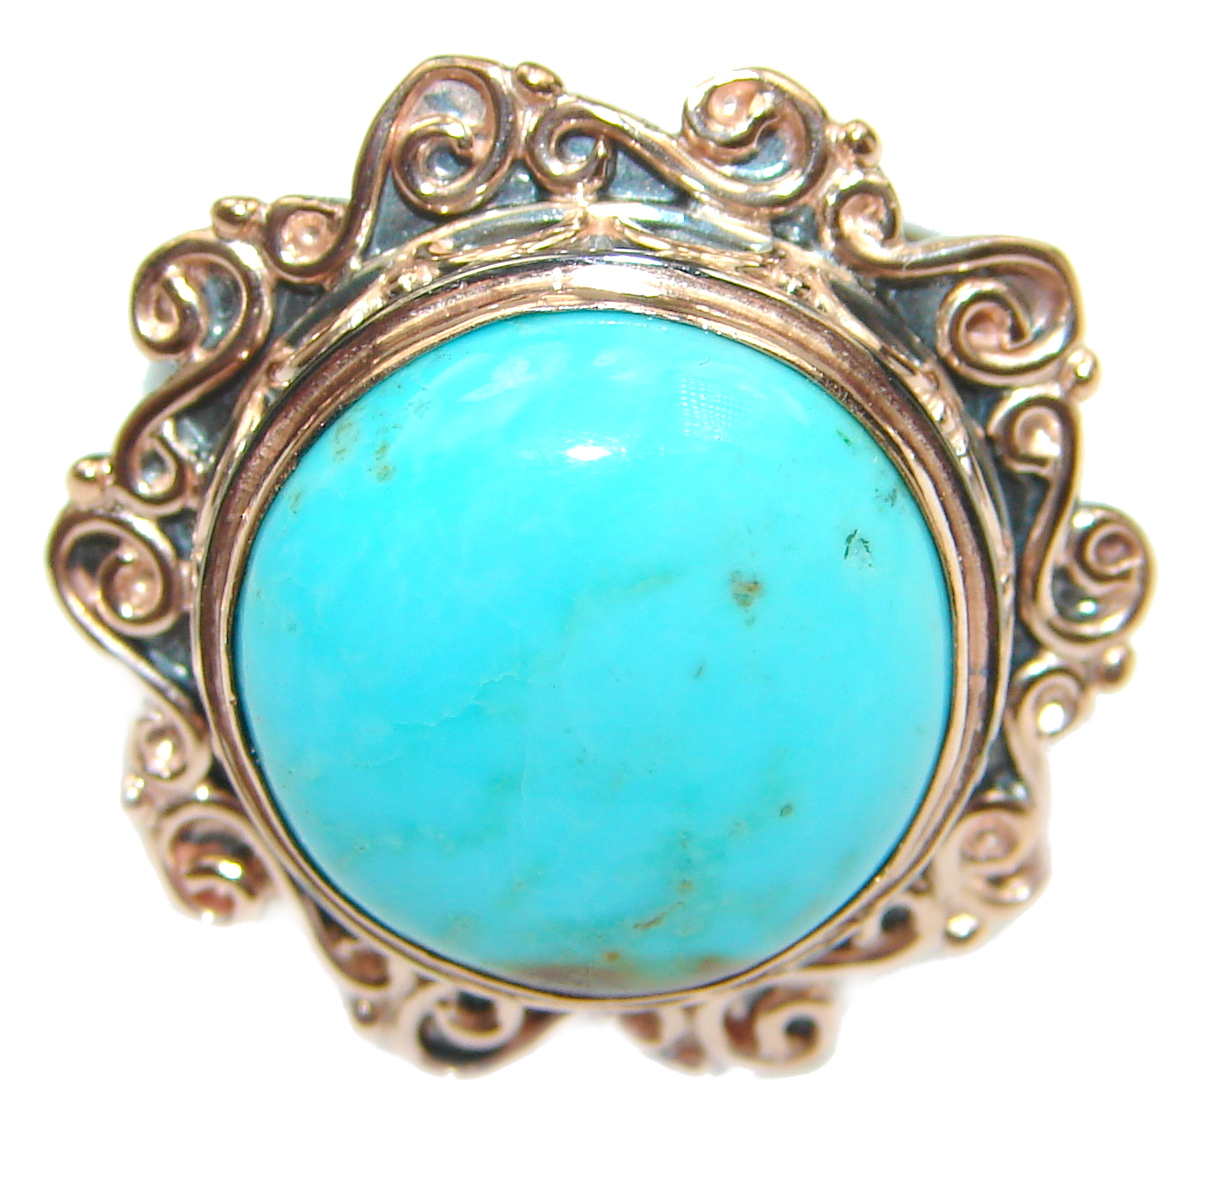 Genuine Sleeping Beauty Turquoise Rose Gold over .925 Sterling Silver Ring size 7 adjustable